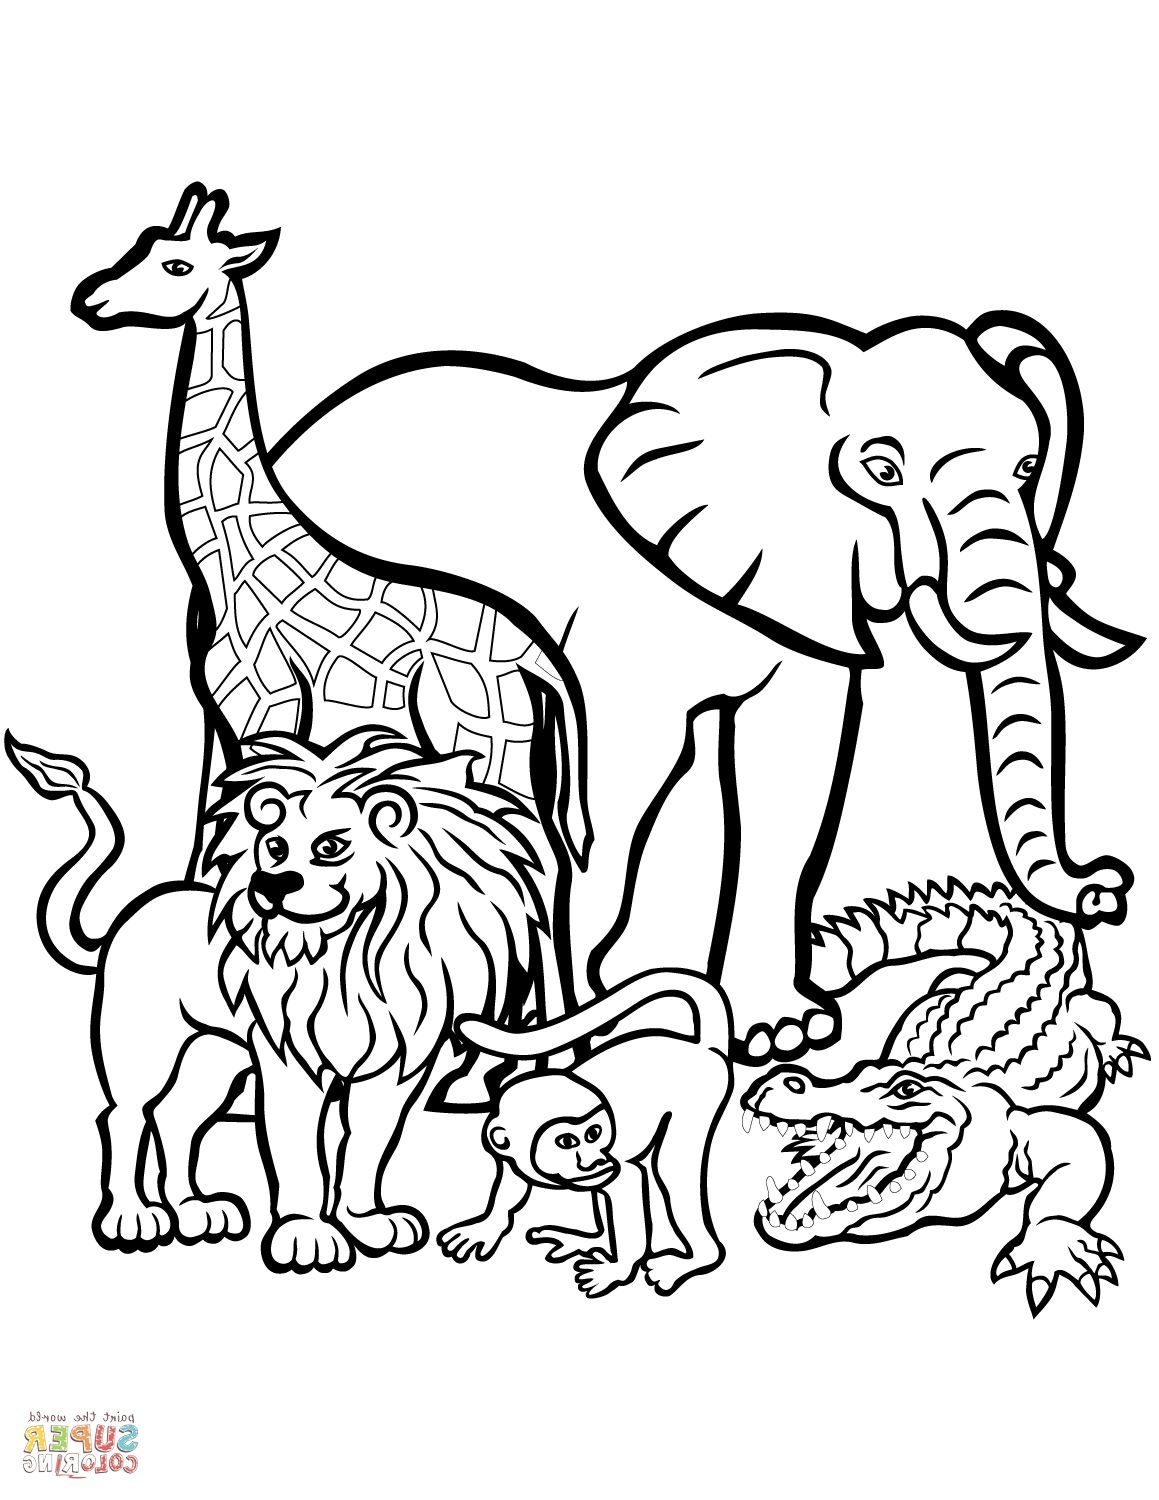 Zoo Coloring Pages Printable Free By Stephen Joseph Gifts Farm Animal Coloring Pages Zoo Coloring Pages Zoo Animal Coloring Pages